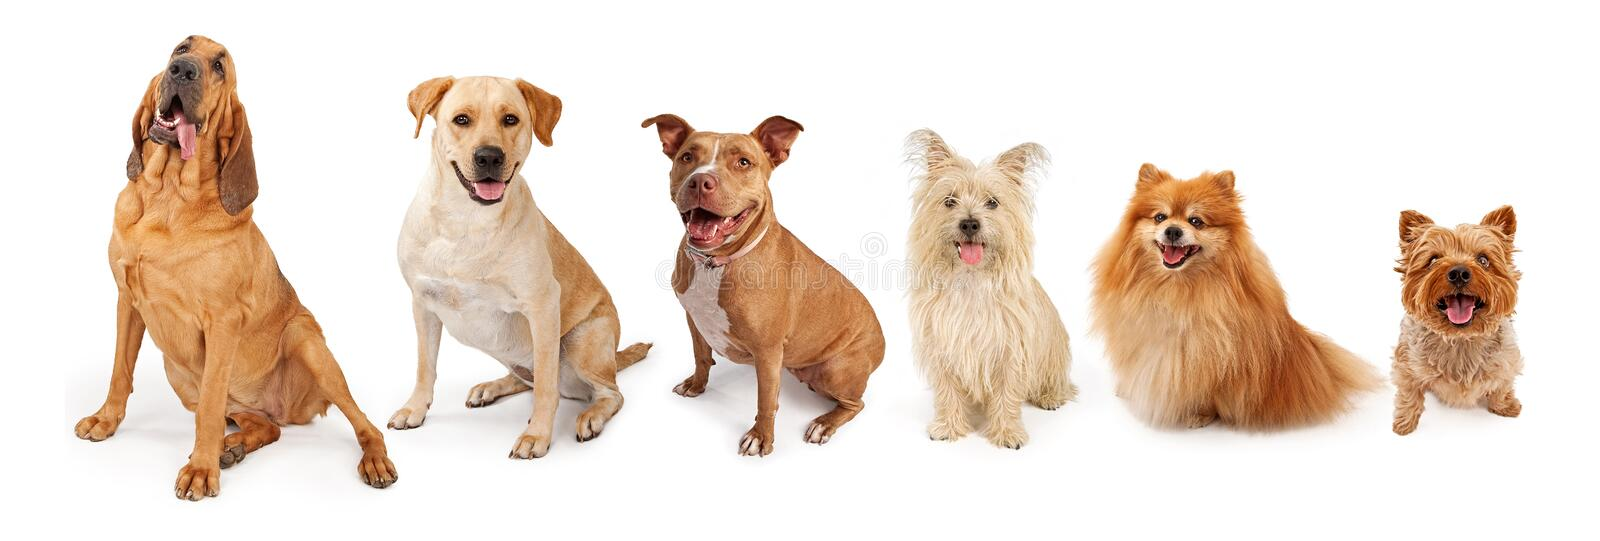 Group of Dogs From Large to Small. A group of five dogs of popular breed from large to small. Isolated on white royalty free stock photo